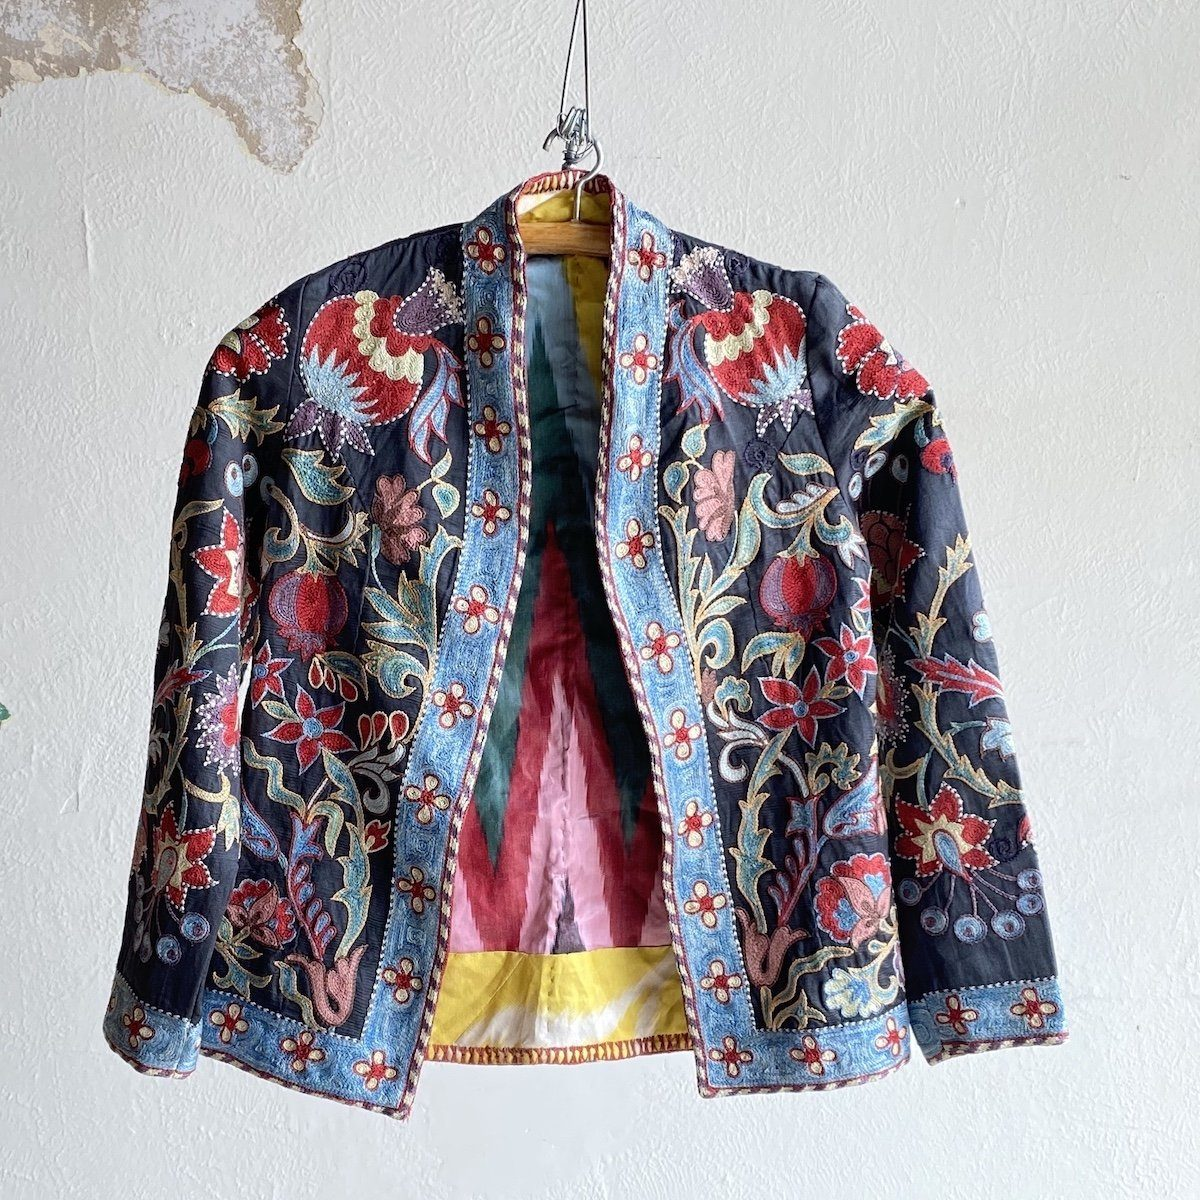 Hand-Stitched Suzani Jacket from Uzbekistan